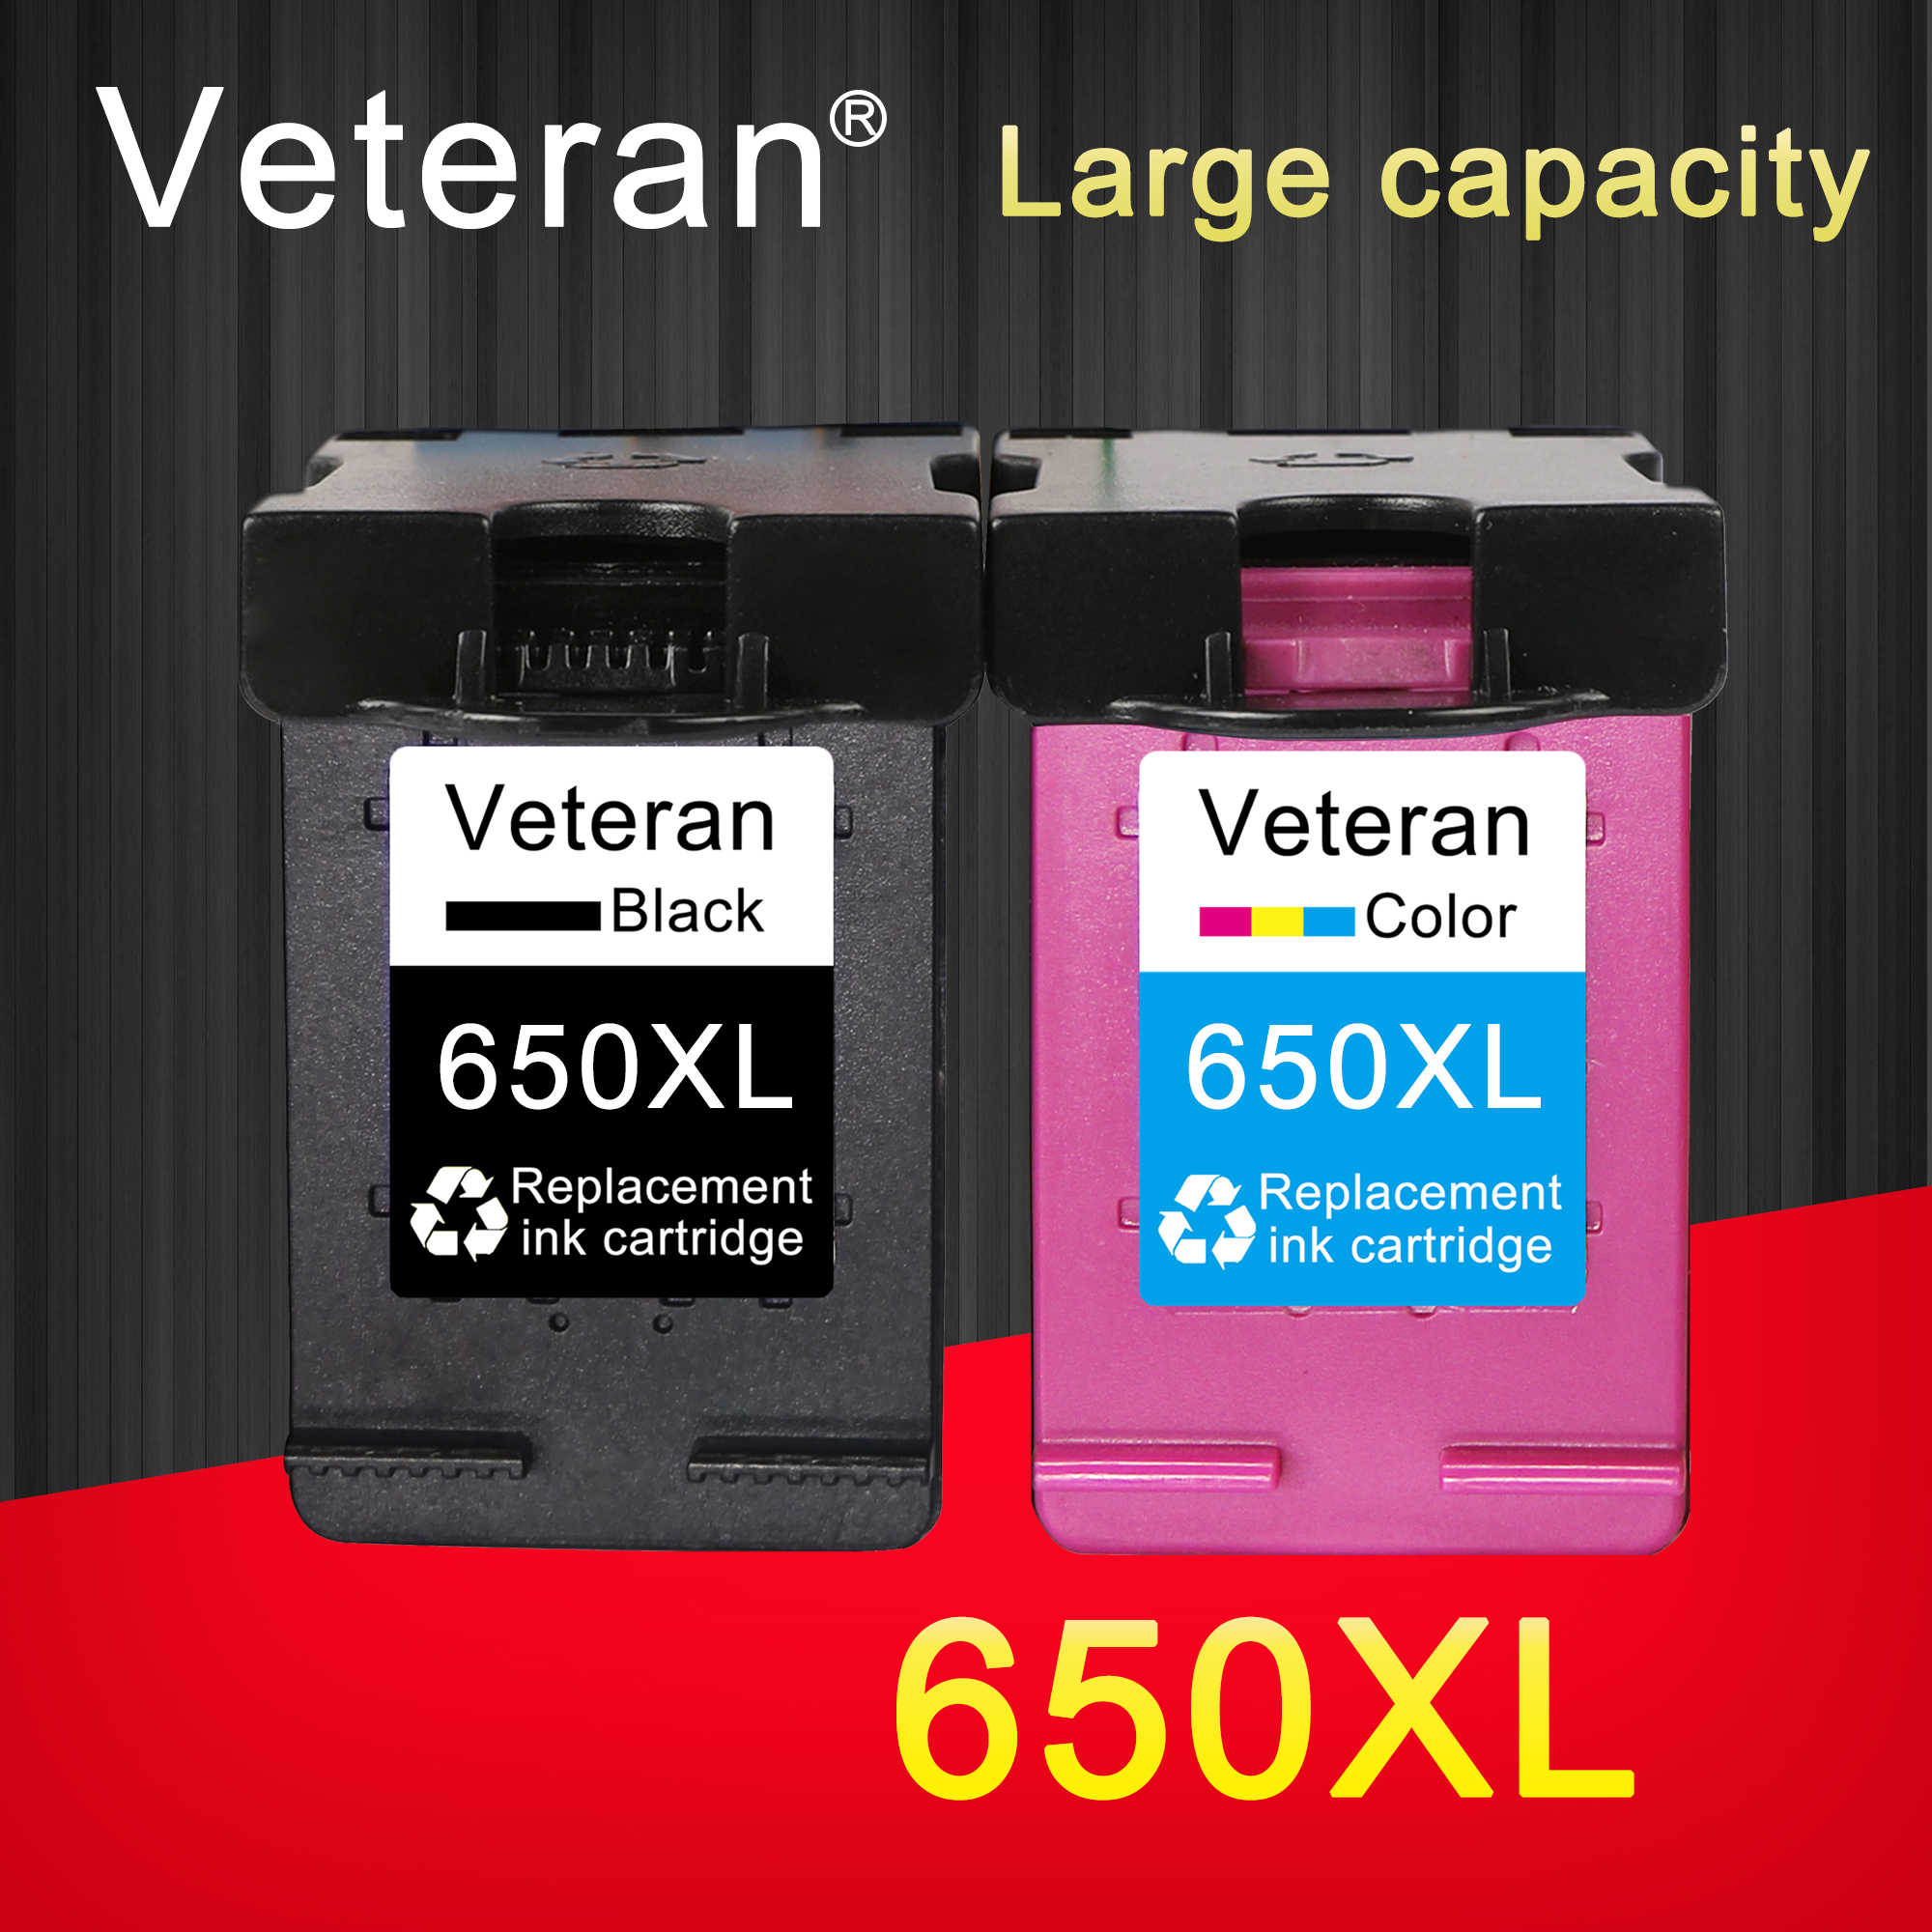 Veteran Ink Cartridge 650XL Pengganti HP 650 HP 650 XL Deskjet 1015 1515 2515 2545 2645 3515 4645 Printer